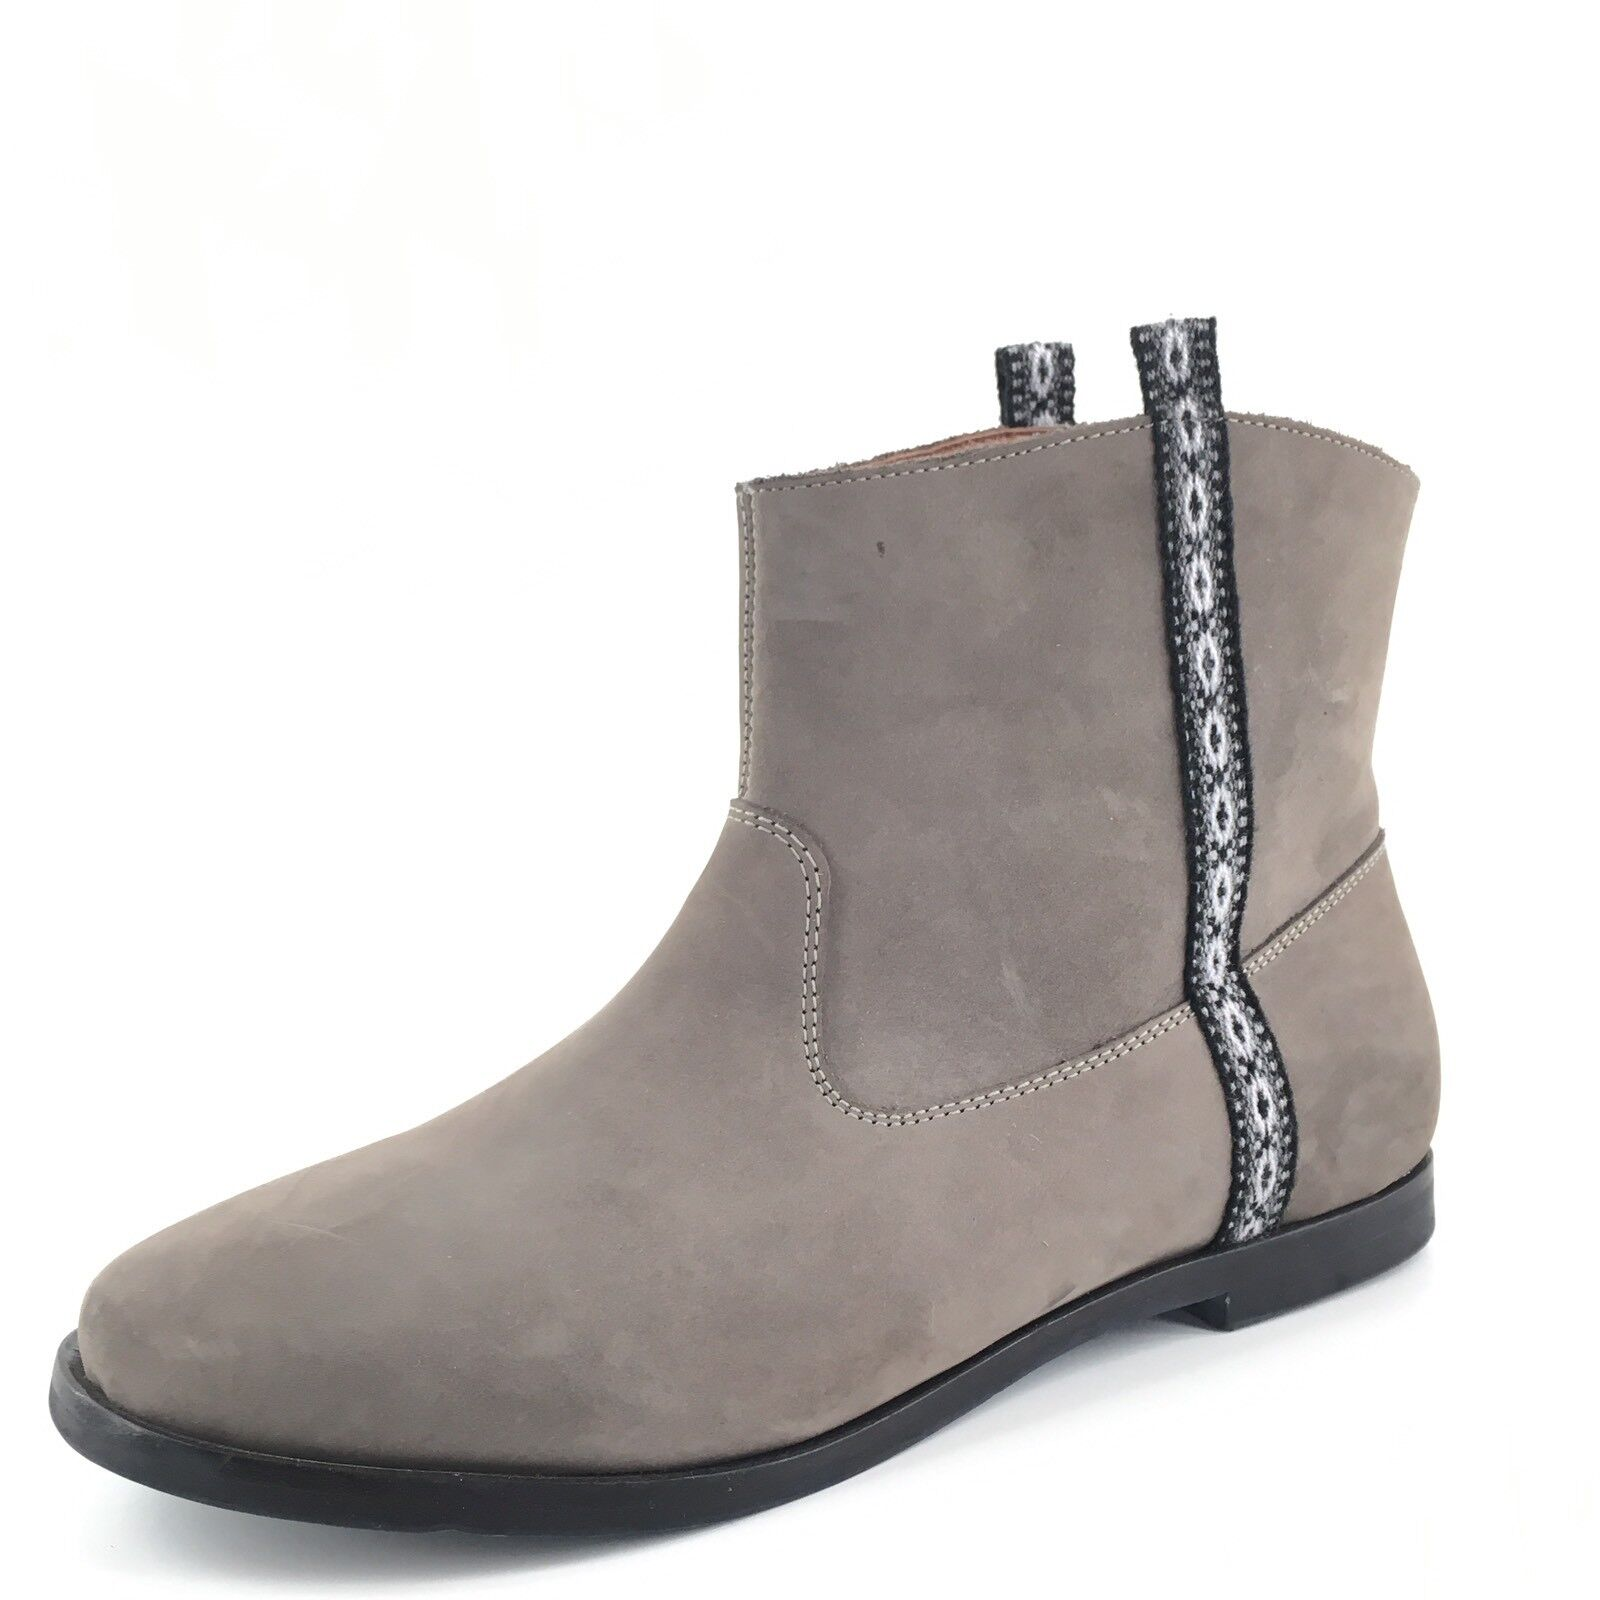 Fortress Of Inca Sofia Terra Gray Leather Short Boots Women's Size 8 M*